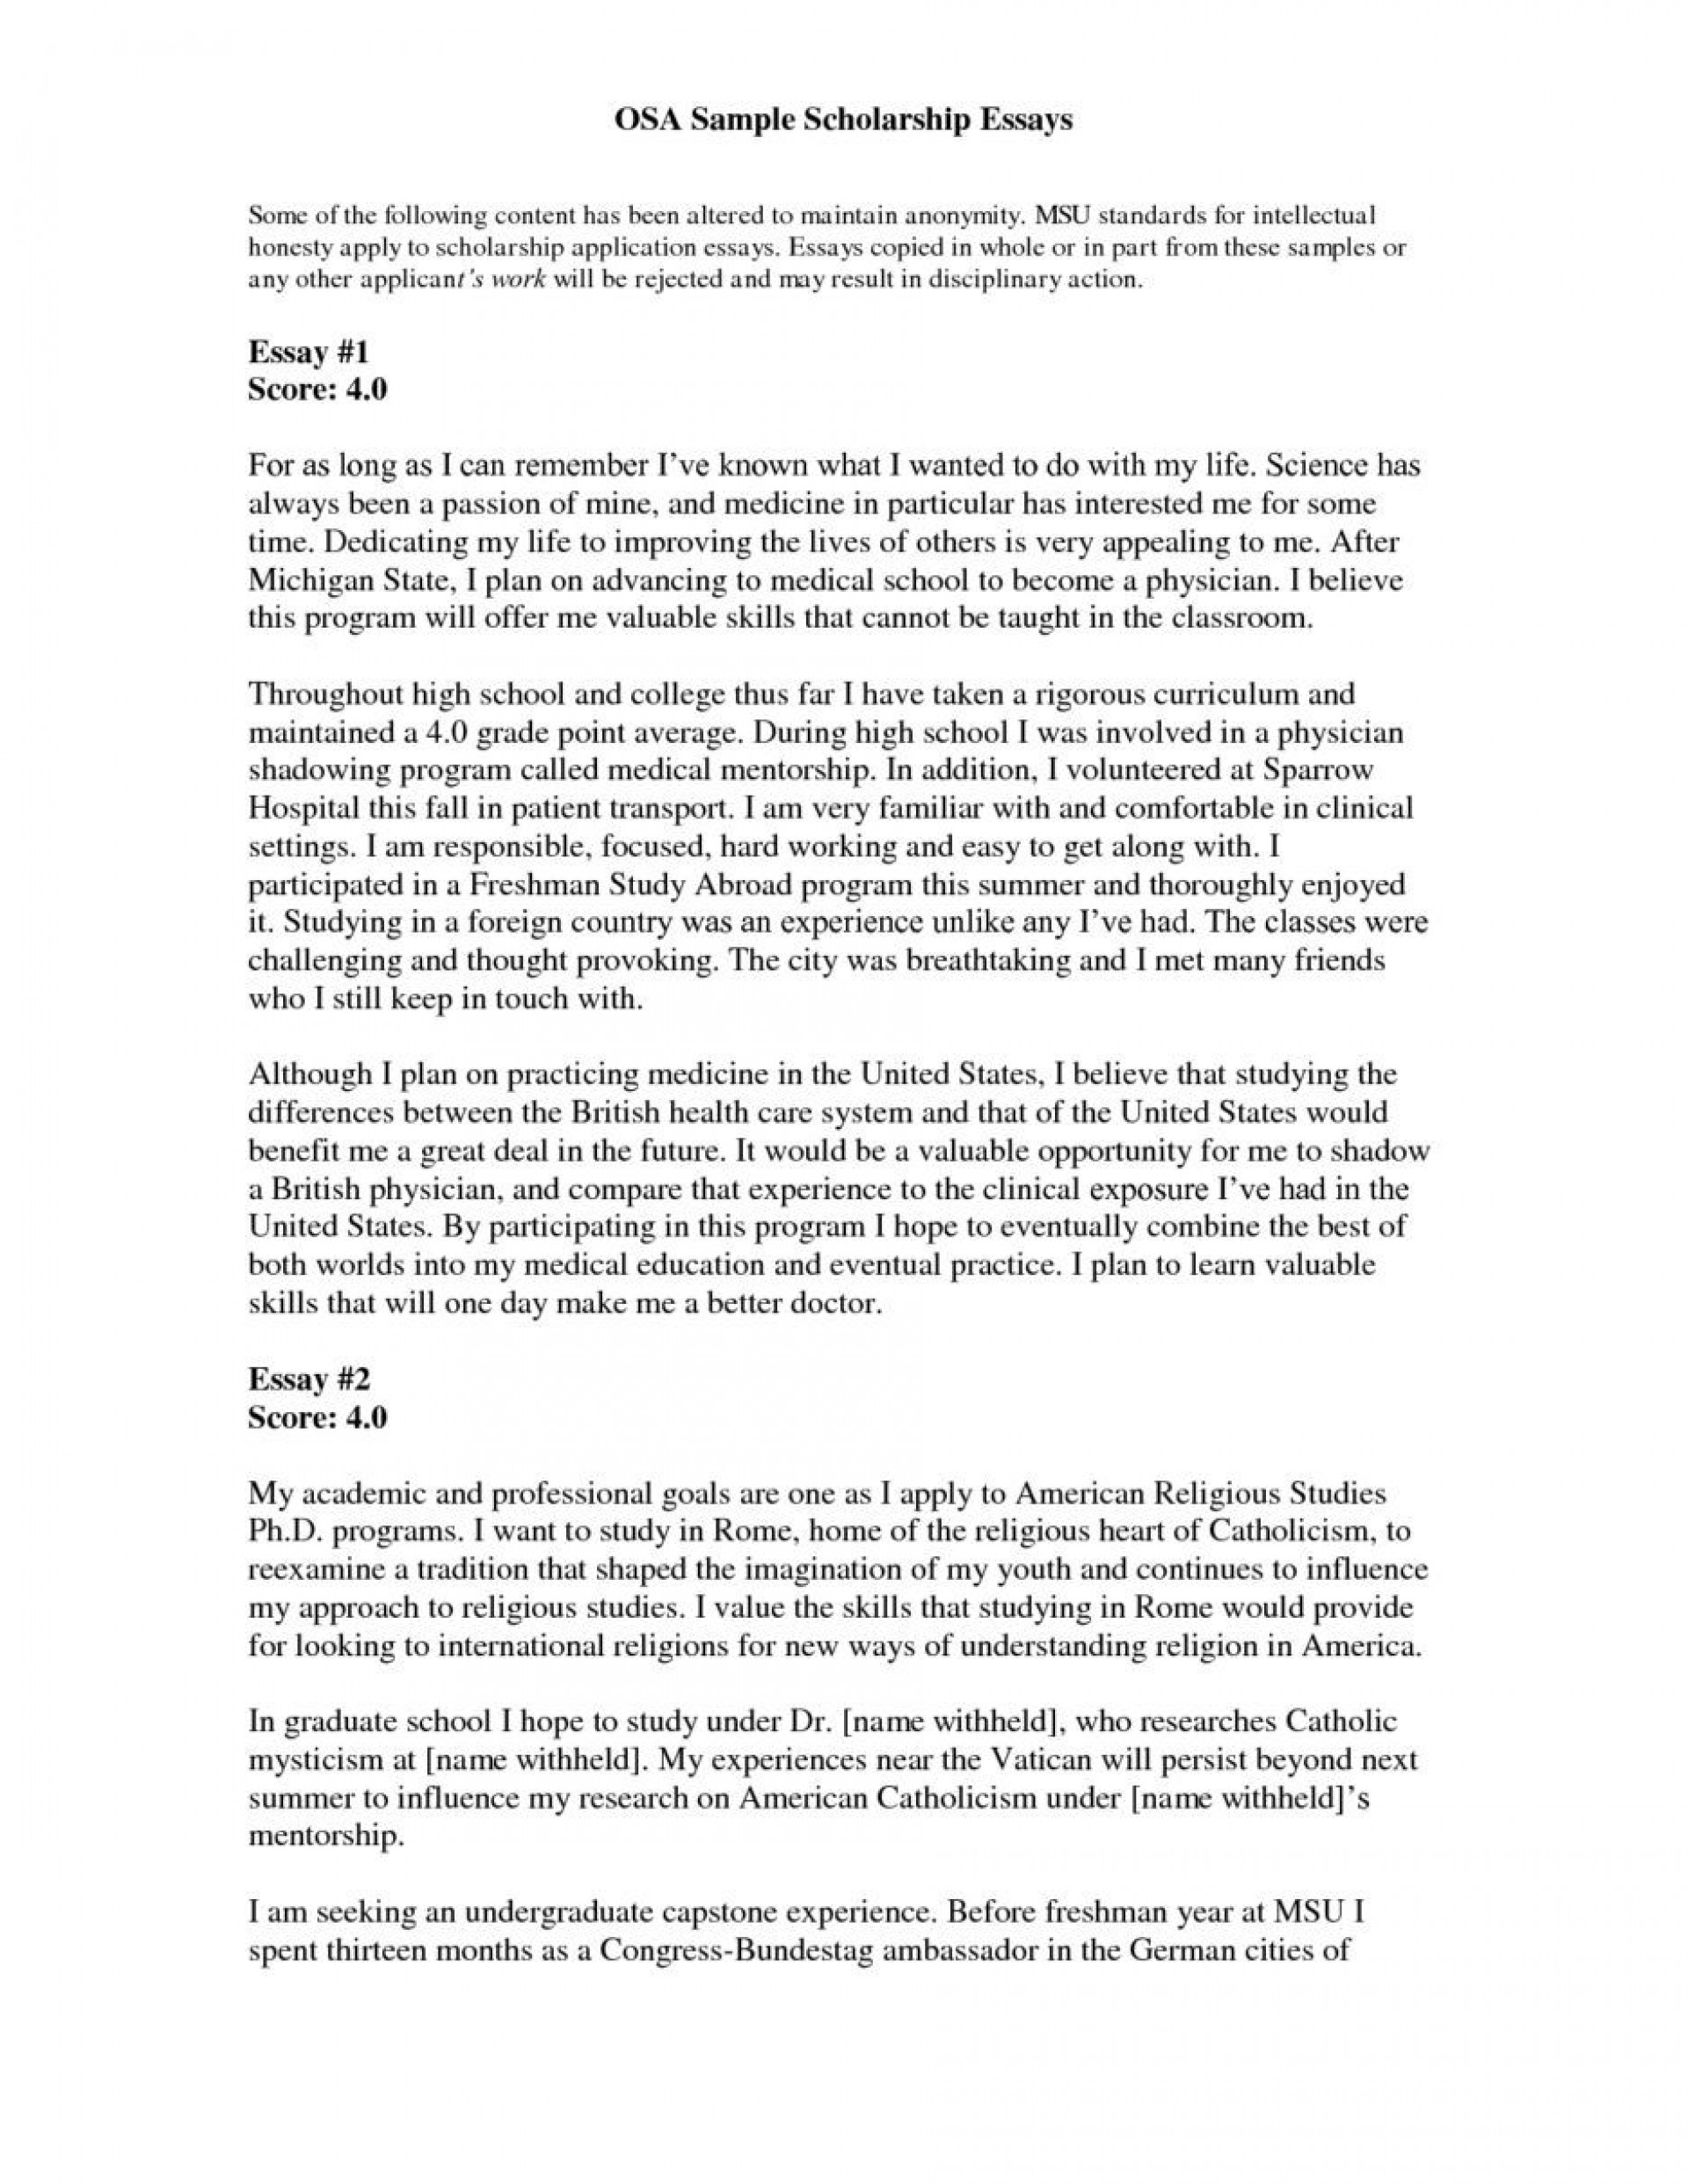 001 Essay Example Scholarship Application Surprising Examples Mba College About Yourself 1920